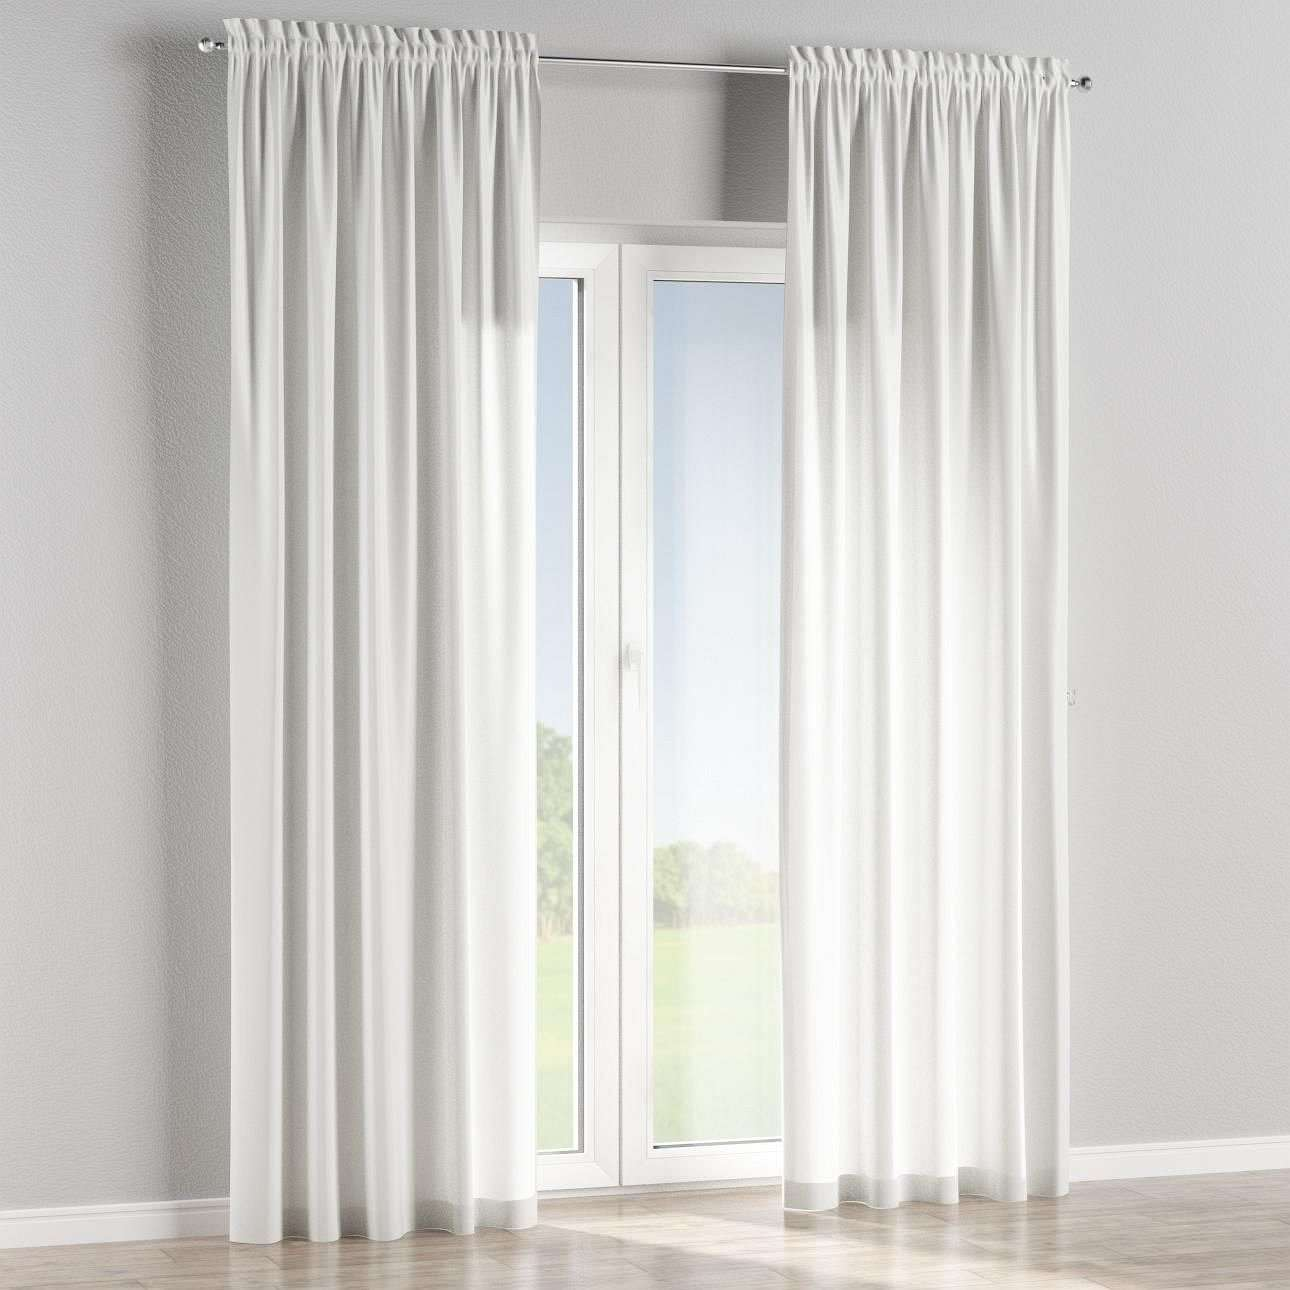 Slot and frill curtains in collection Rustica, fabric: 138-19